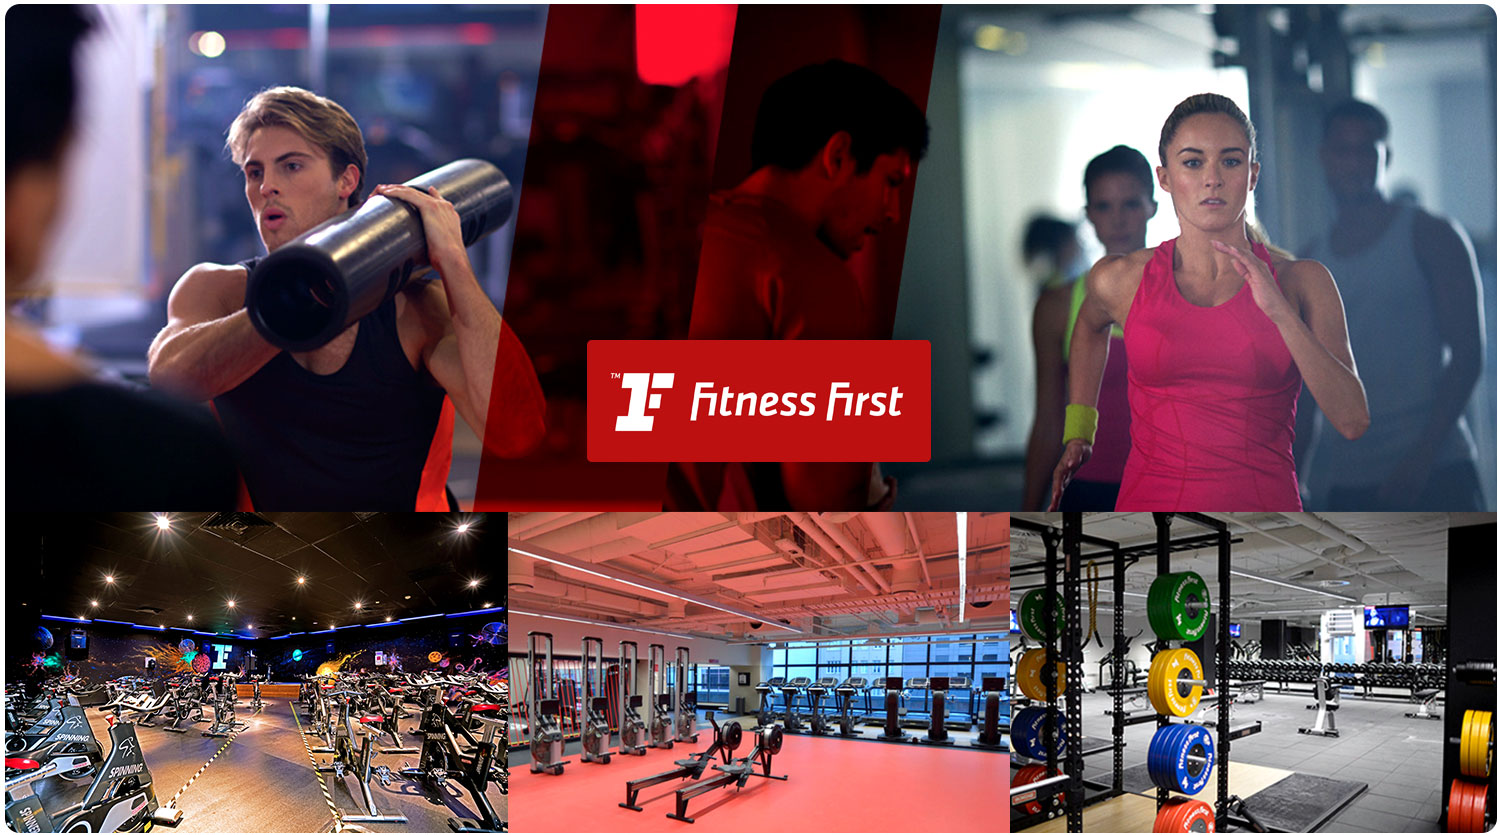 Start your Fitness Journey with Fitness First with only $14.95 for 14 days at Fitness First Melbourne VIC. Experience our first class gym and freestyle classes inc. Pilates, Yoga, HIIT, Boxing, Les Mills and more. Take the first step with Fitness First Melbourne VIC.